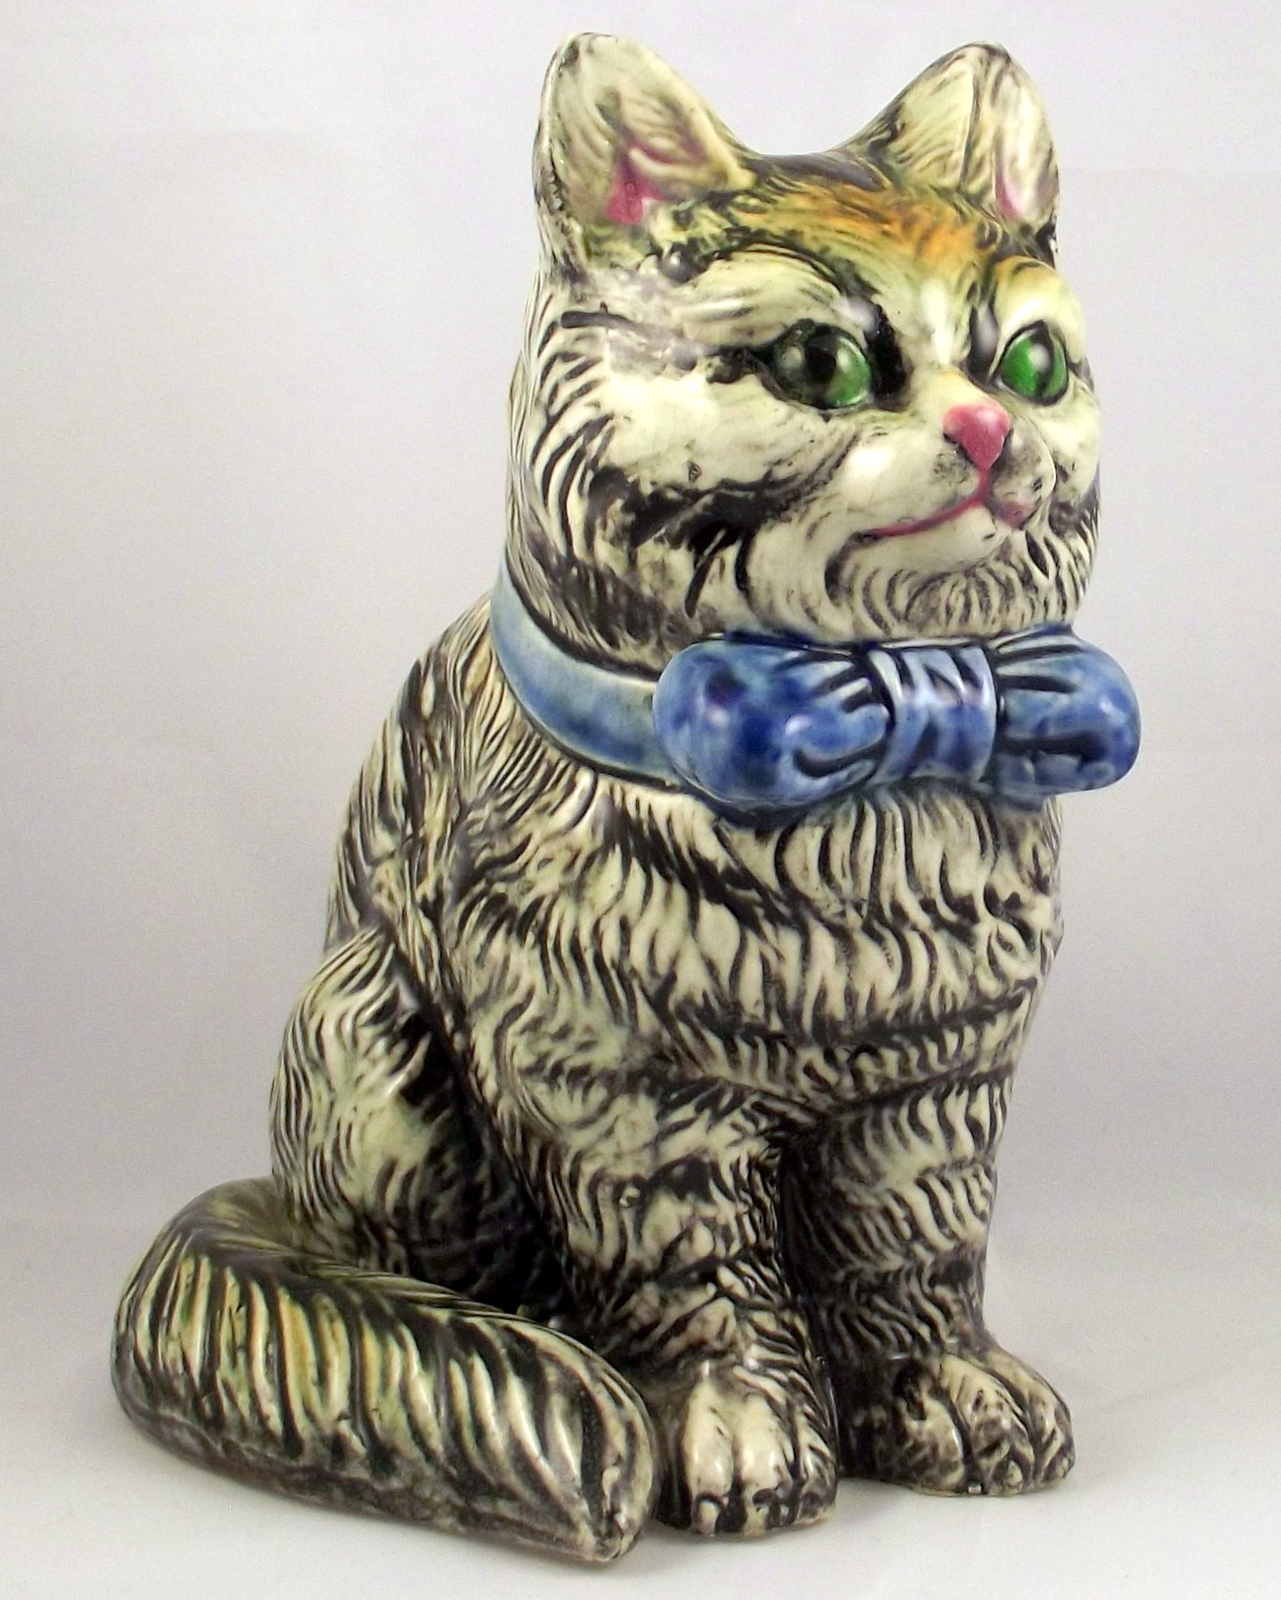 Midcentury ceramic sitting striped tabby cat planter made in Japan